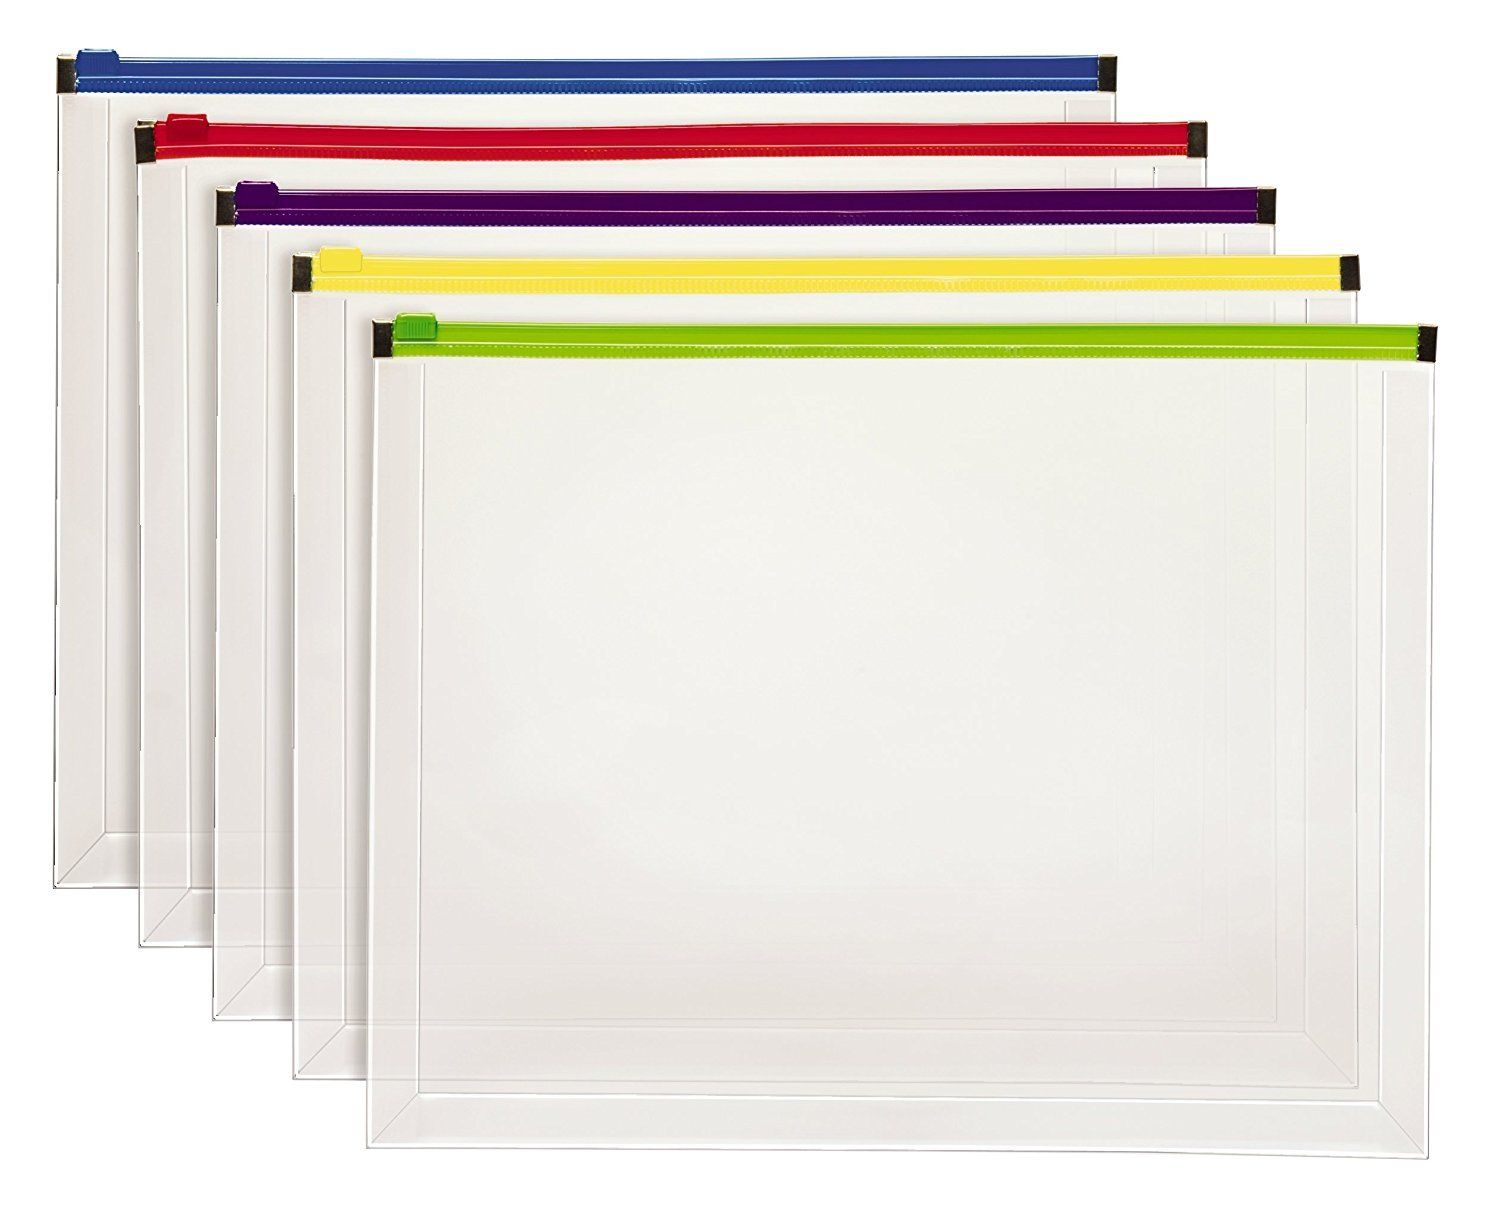 Pendaflex Poly Zip Envelope, Letter Size, Assorted Color Zippers, 5 per Pack 3-Pack